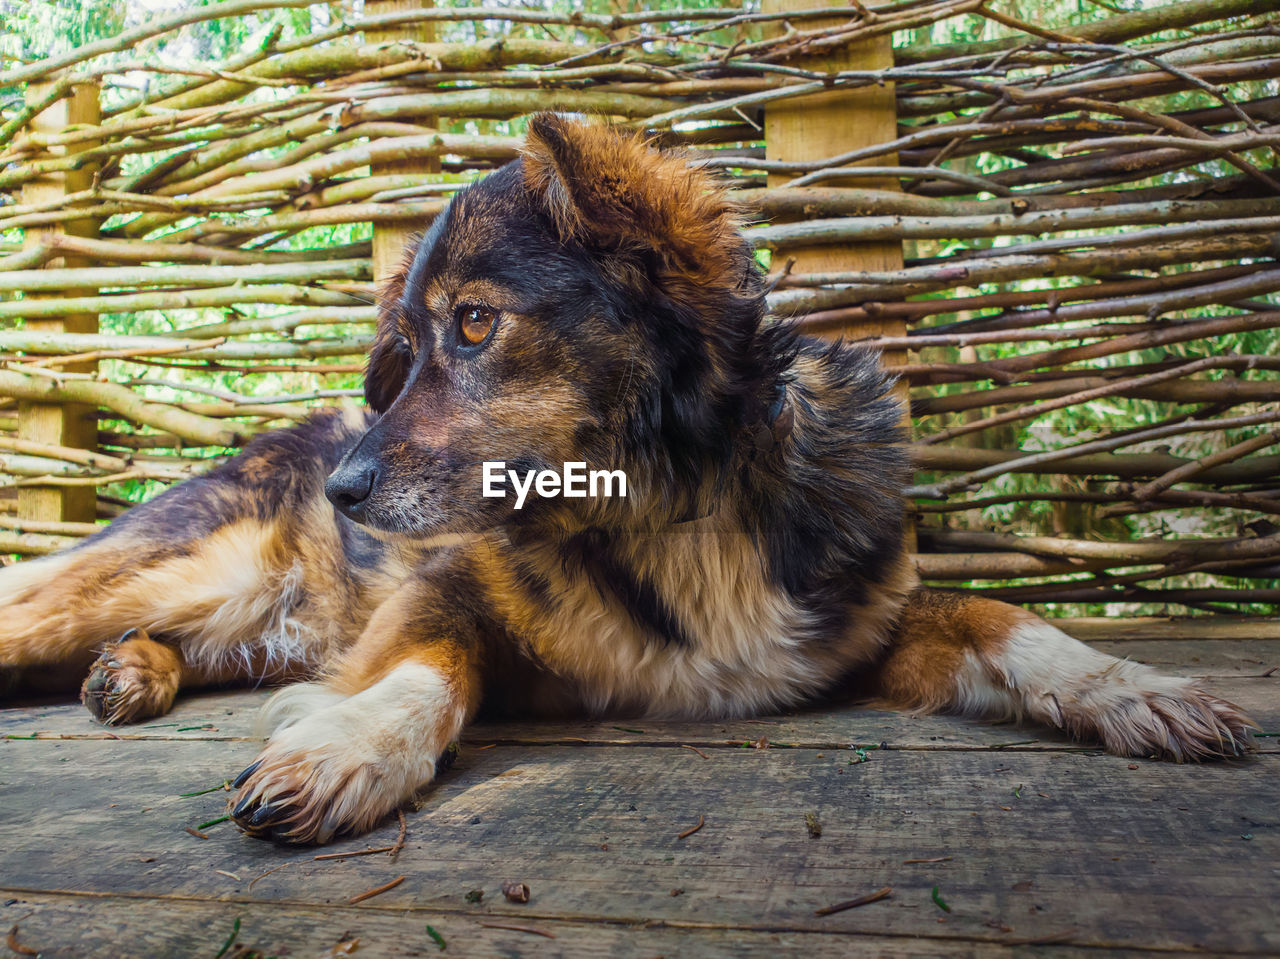 animal themes, mammal, one animal, animal, vertebrate, relaxation, domestic animals, domestic, pets, canine, no people, dog, wood - material, resting, day, lying down, brown, outdoors, close-up, looking away, animal head